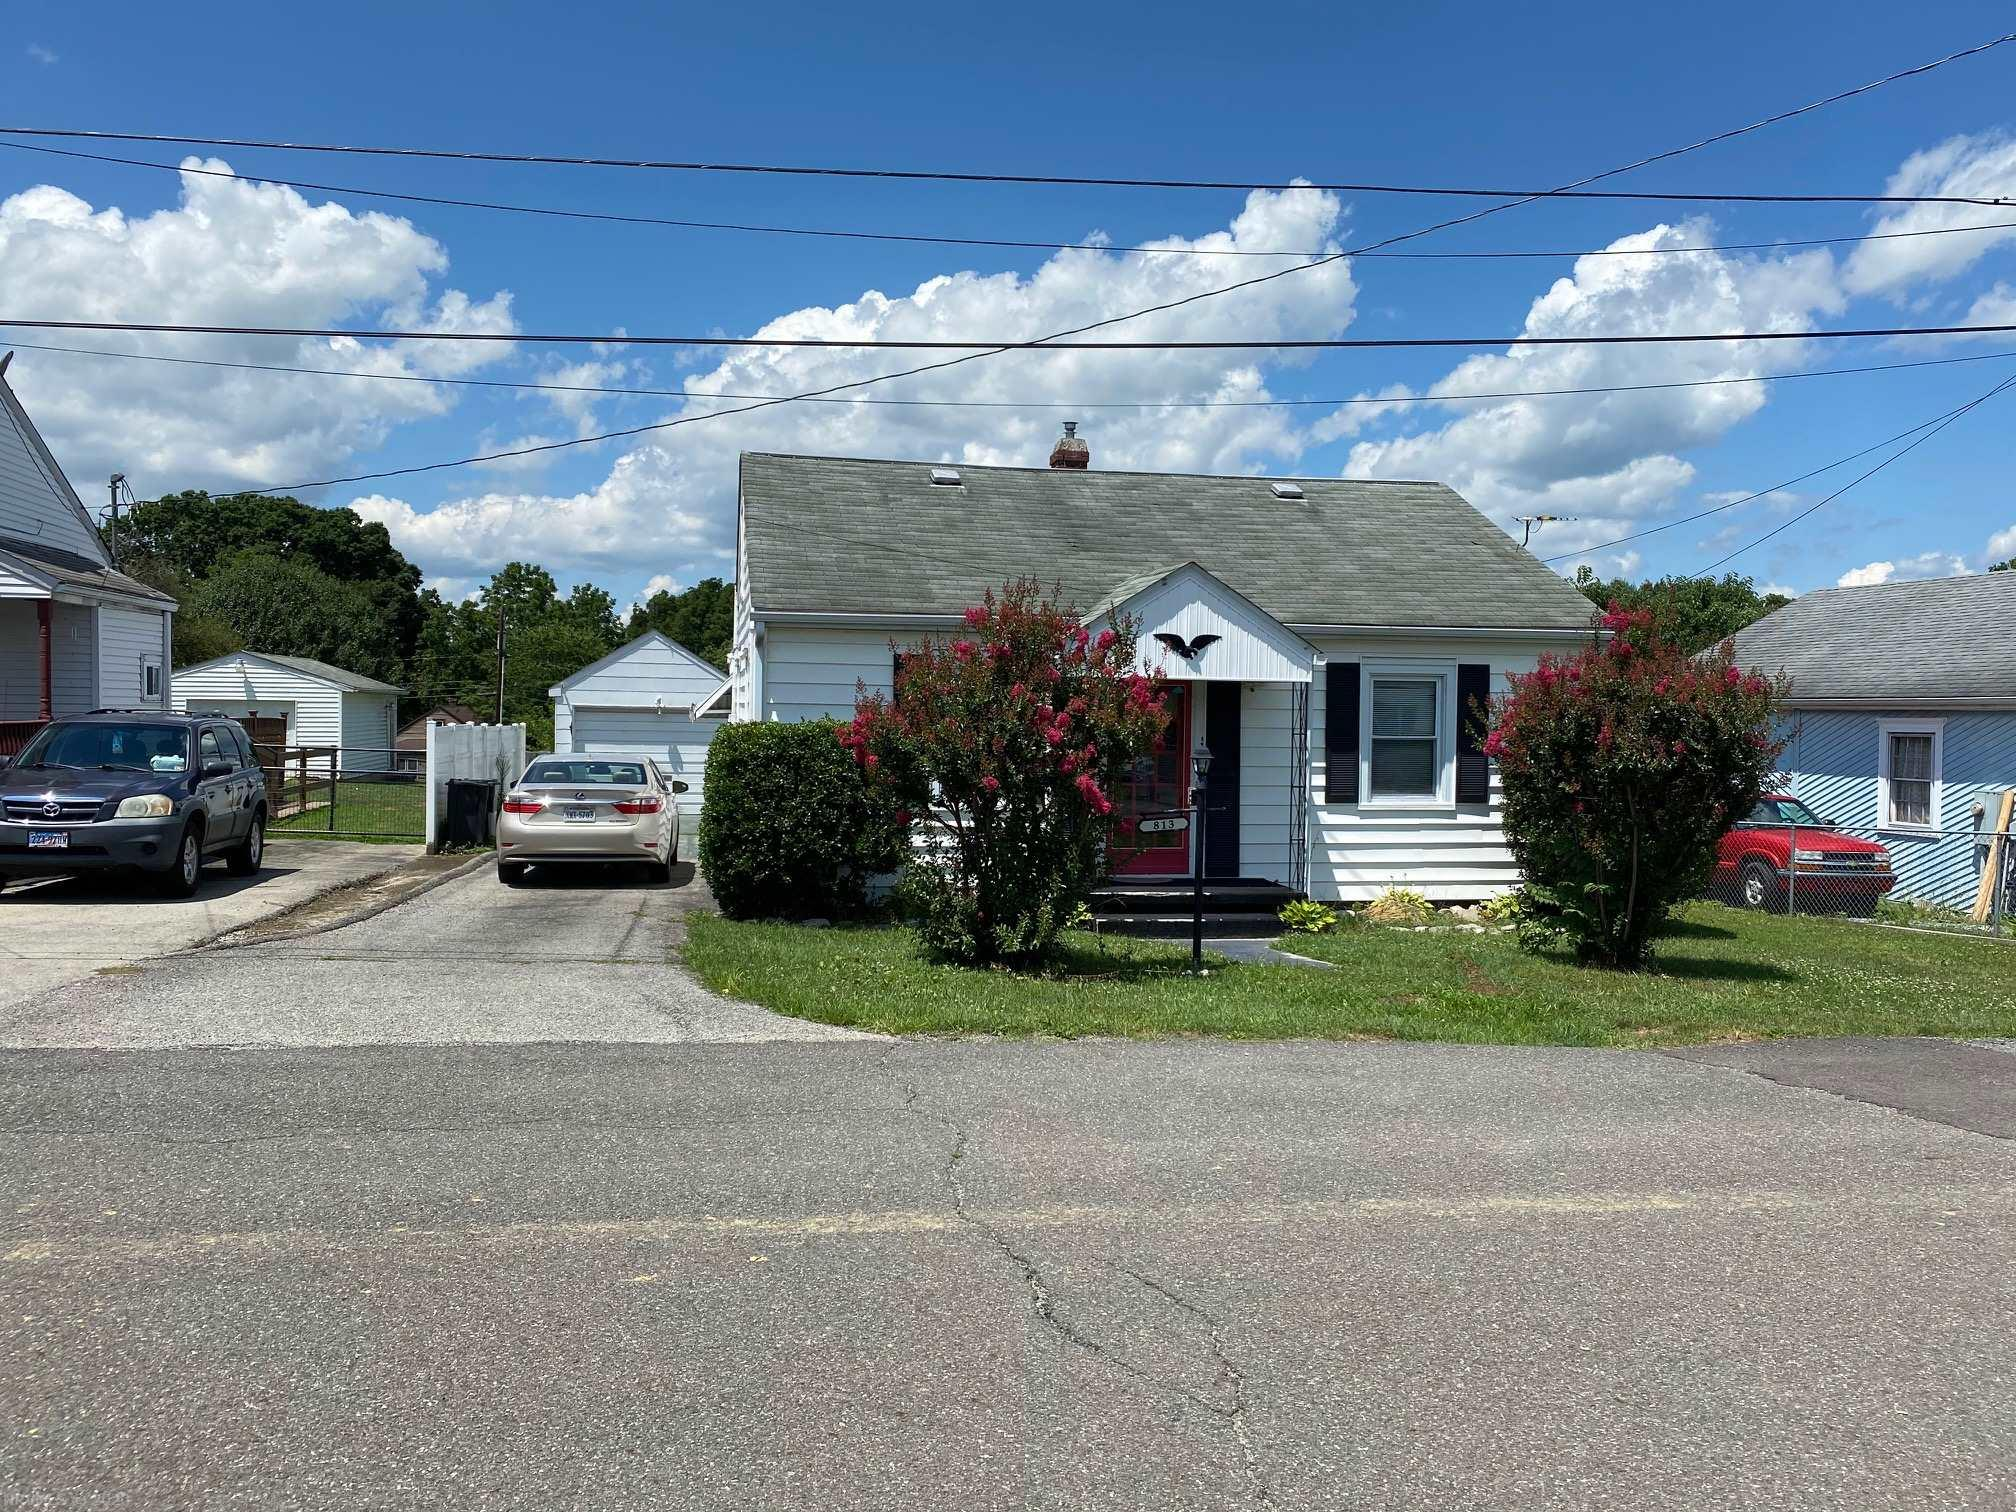 Perfect Starter Home or Investment Property.  Needing a great Garage Workshop or Extra Storage you'll love the over 400 sq. ft. of space. Living Room Chair and Couch Plus TV  along with area carpet included.  New Hot Water Heater.  Remodeled Bath. Home being sold in as is condition. Priced under Tax Assessment. Disclosure: Heating and Cooling System operative however past normal life span.  Roof also will need replacement soon.